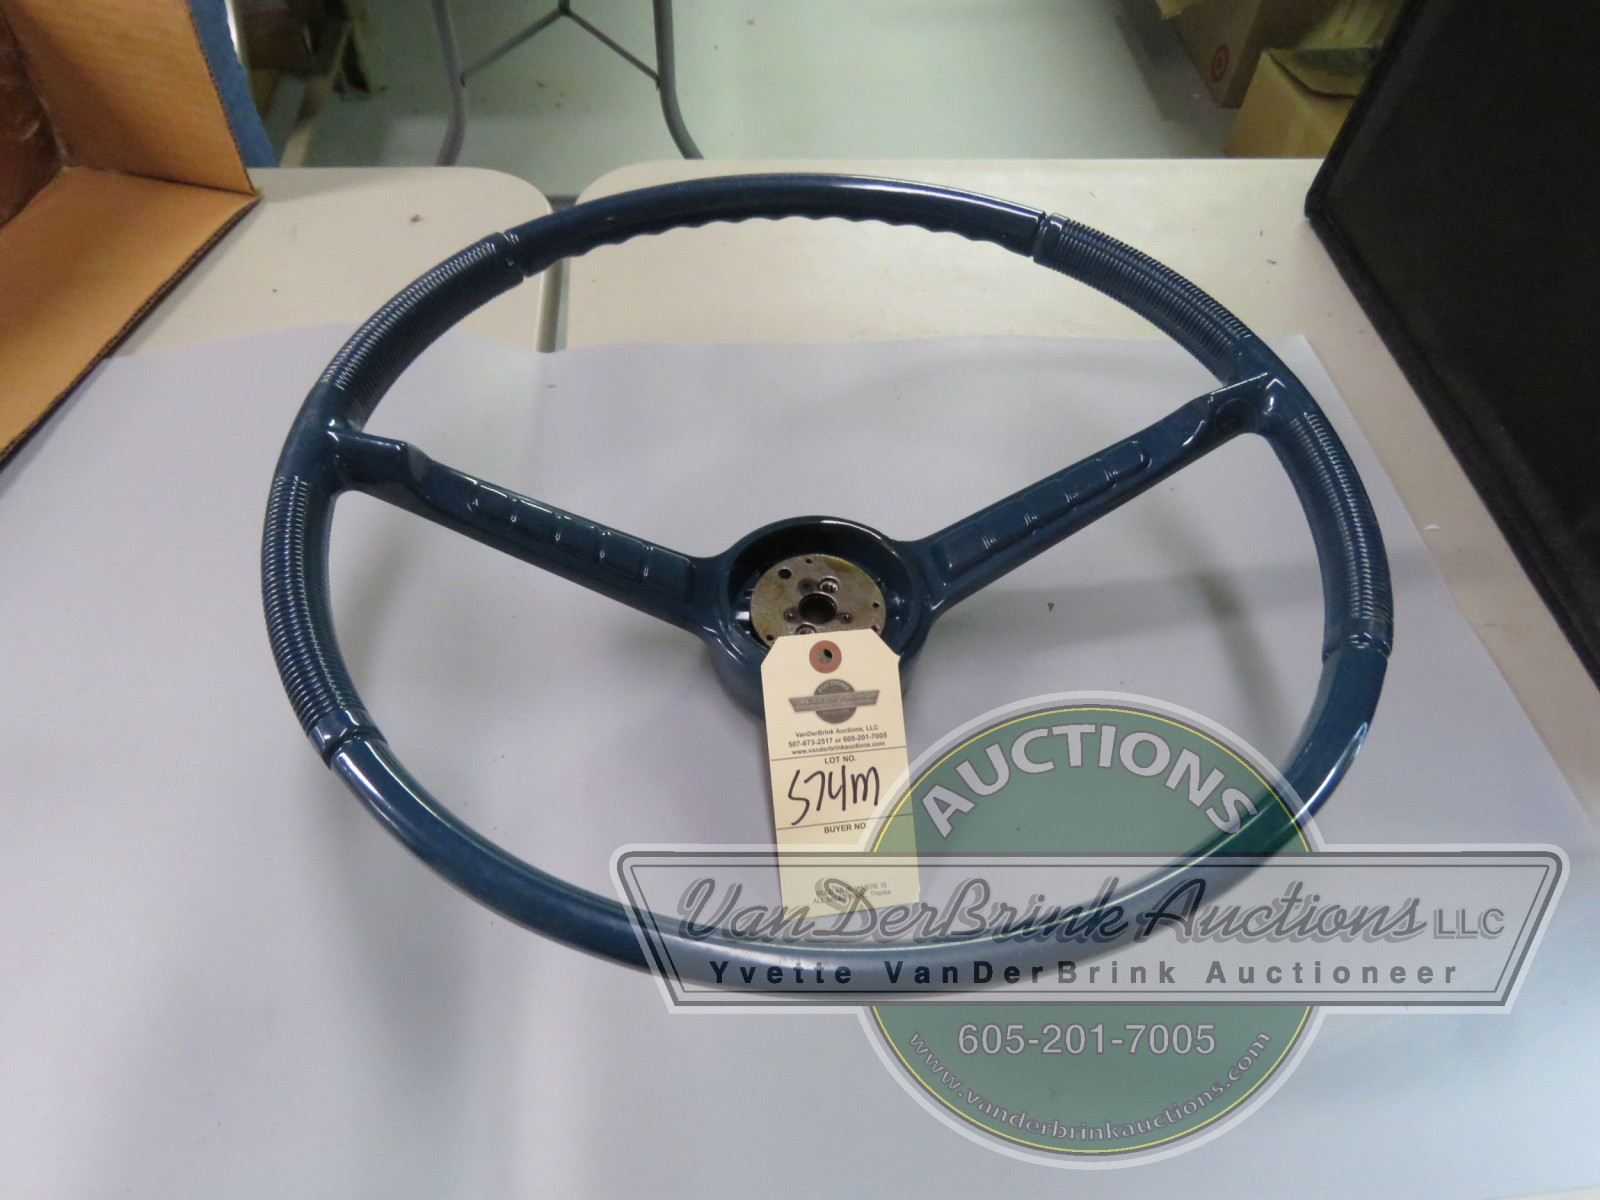 1961-66 NOS STUDEBAKER STEERING WHEEL BLUE - Image 1